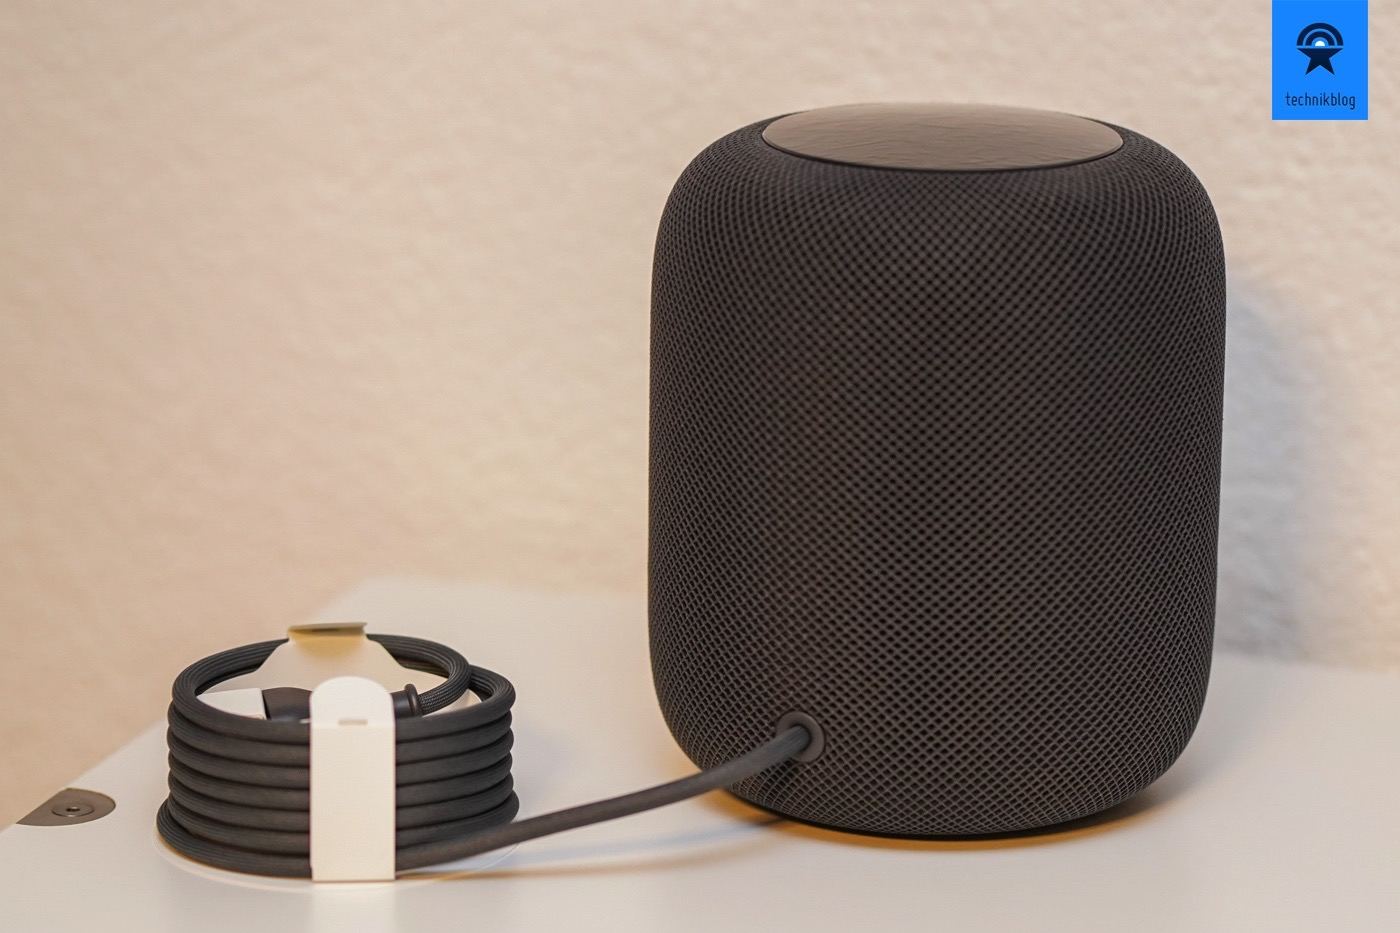 Apple HomePod Lieferumfang